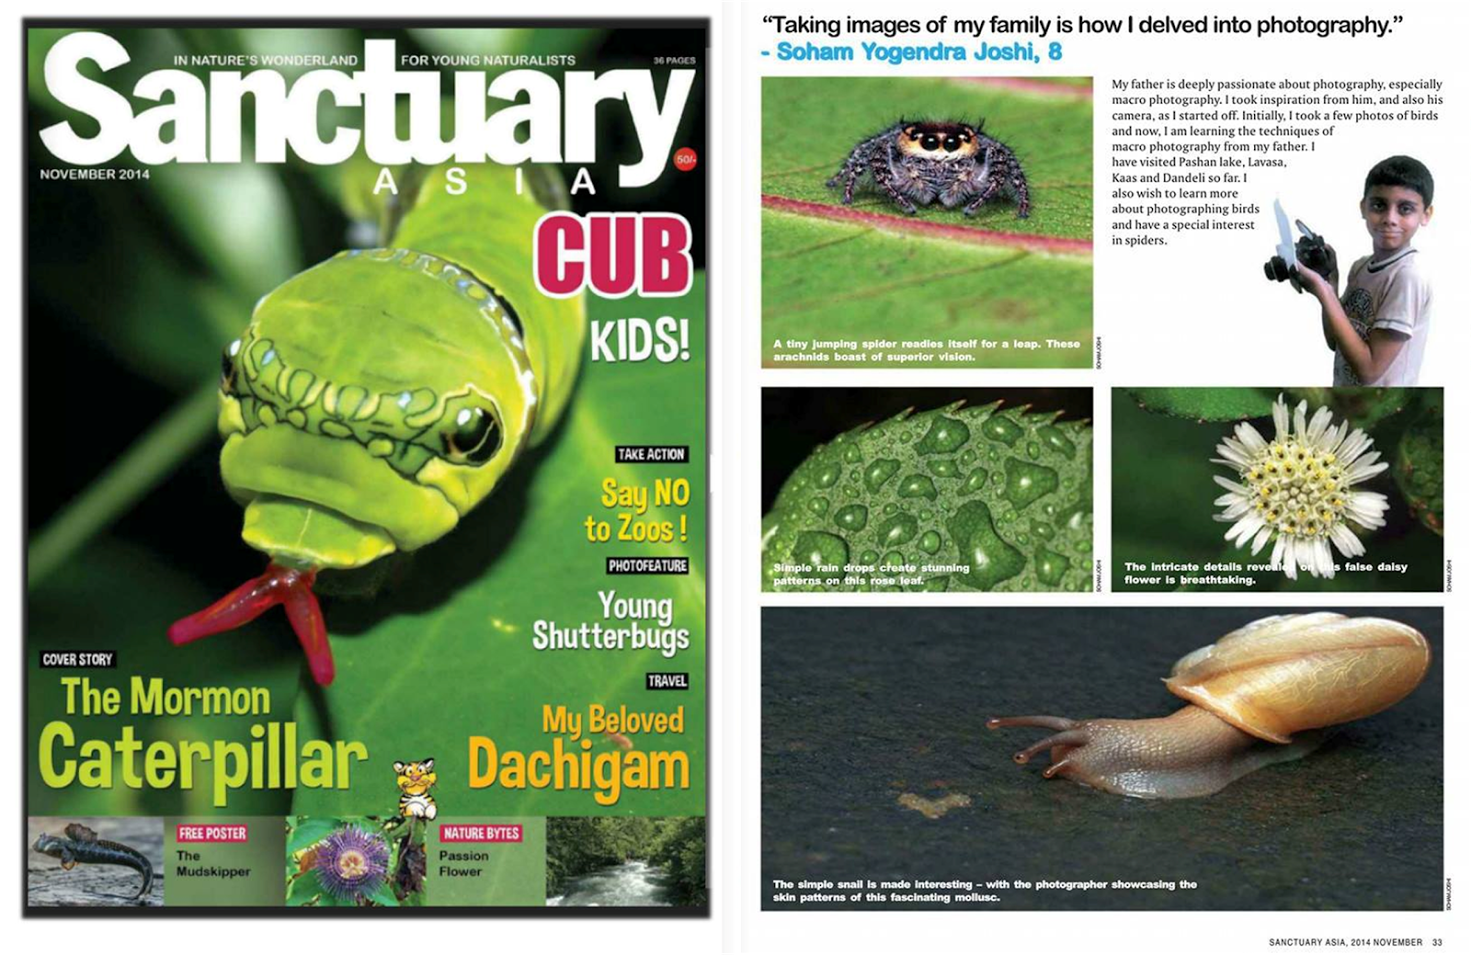 Soham's work published in prestigious Sanctuary Asia CUB magazine